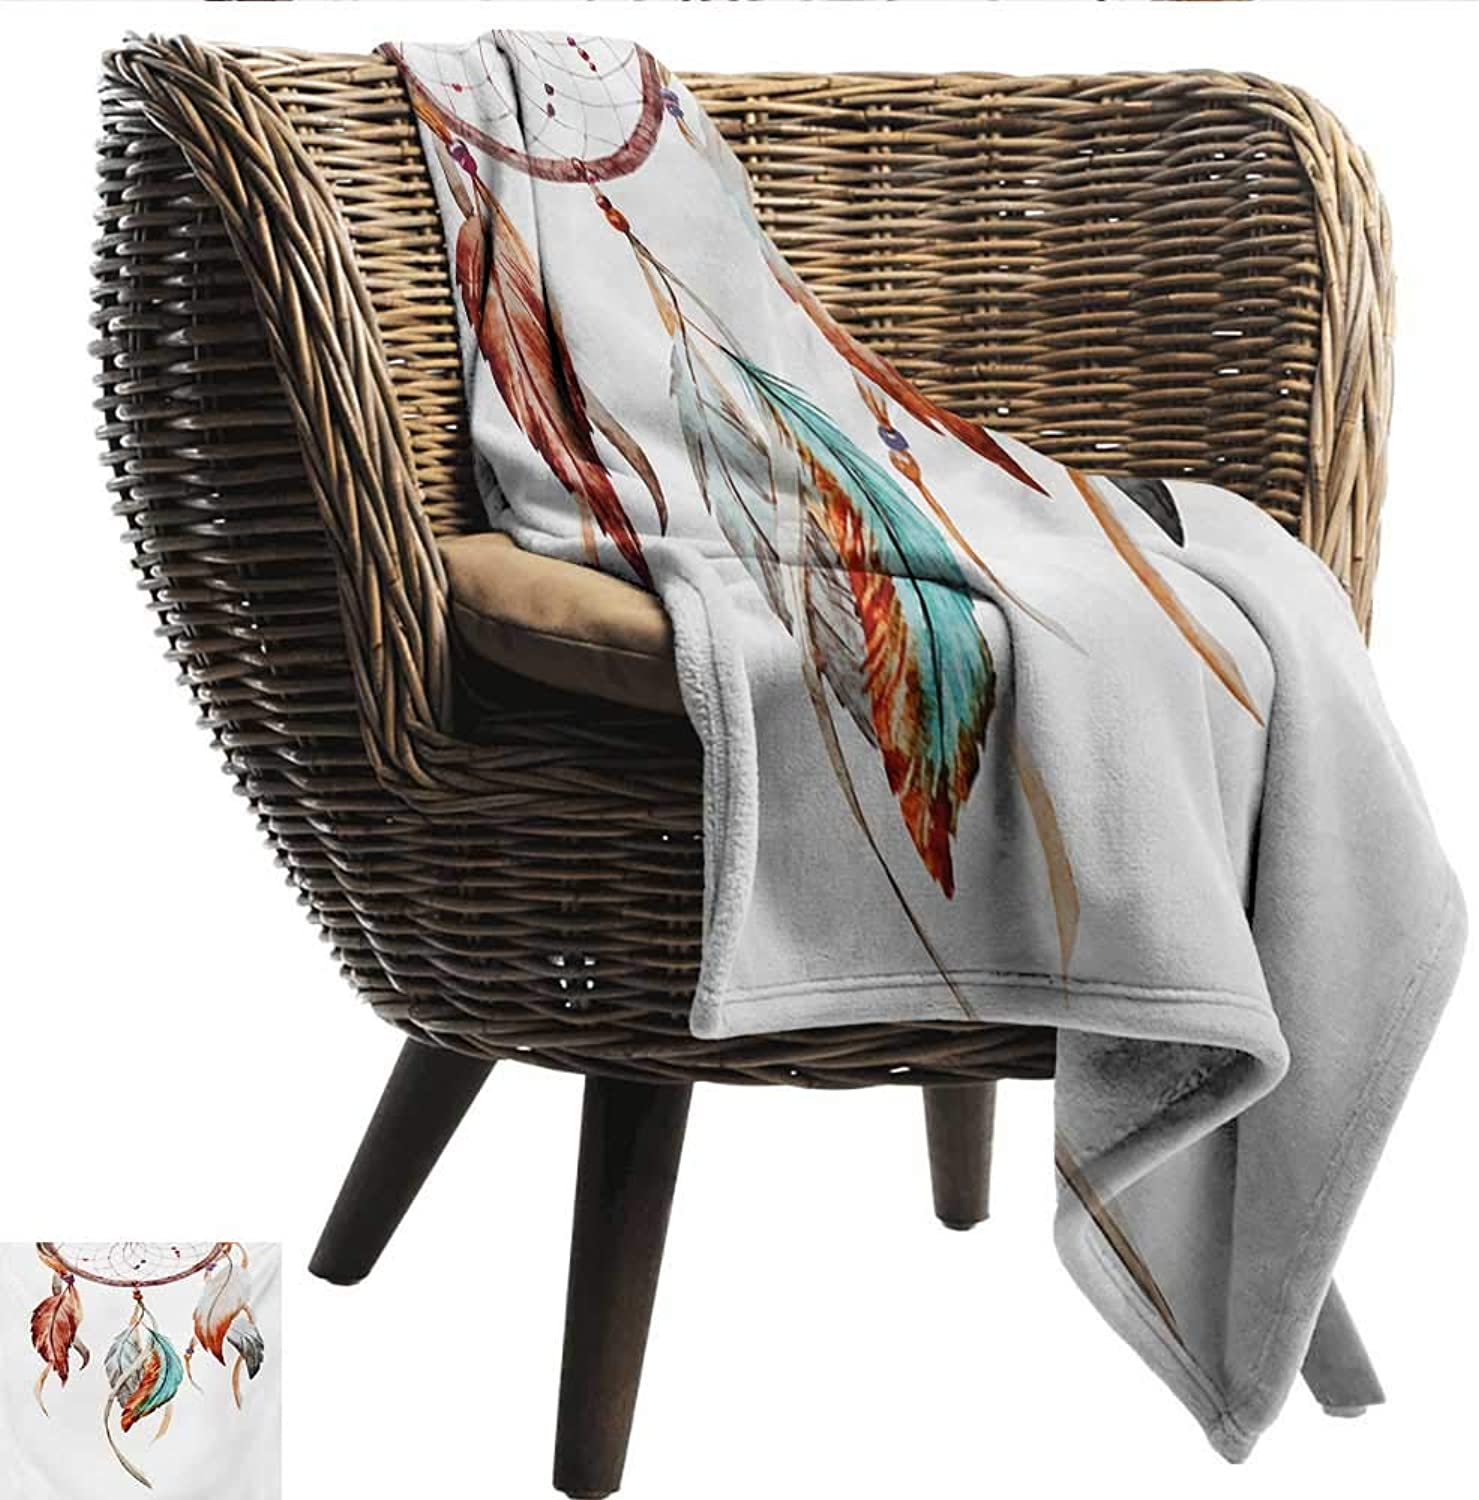 Anshesix Living Room Bedroom Warm Blanket Feather Watercolor Dream Catcher Native American Inspirations Traditional Print Summer Quilt Comforter W60 xL51 Sofa,Picnic,Camping,Beach,Everyday use